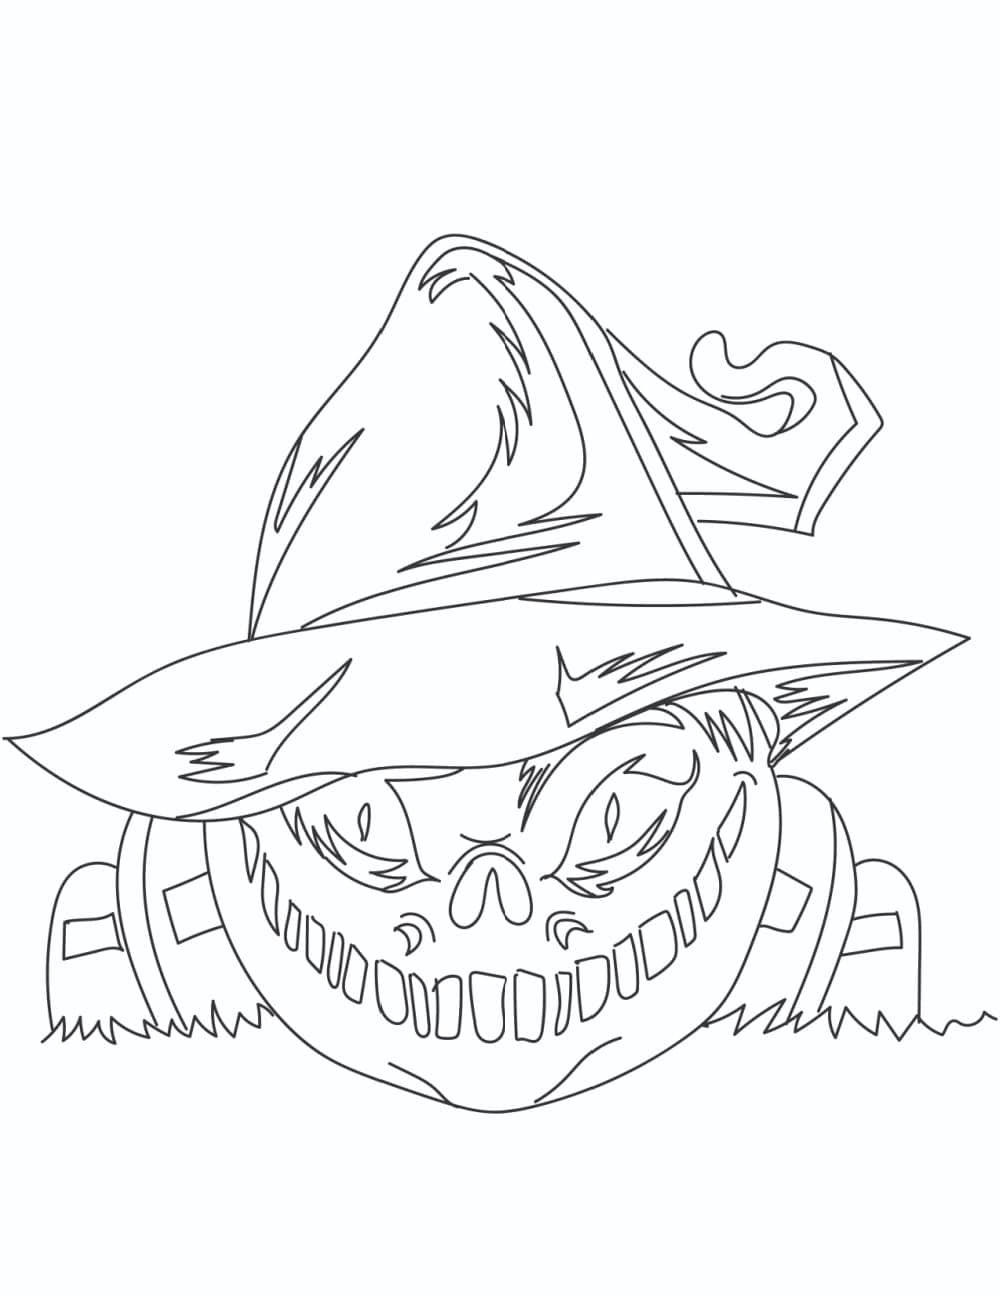 The graveyard ghoul haunting these free printable scary Halloween coloring pages is sure to have you double checking your doors and windows!